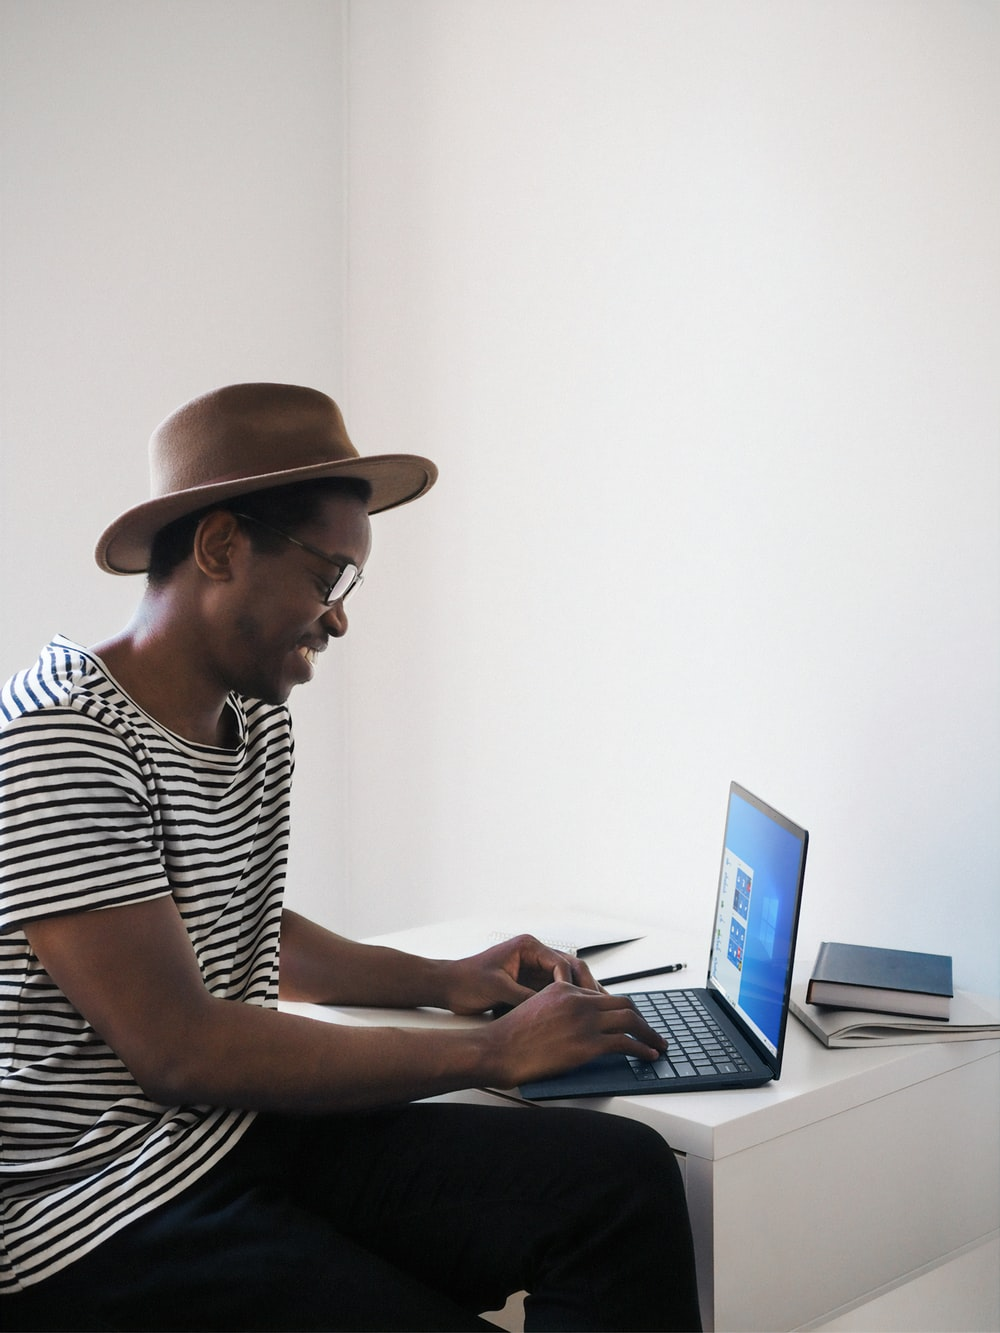 man in white and black striped shirt using laptop computer